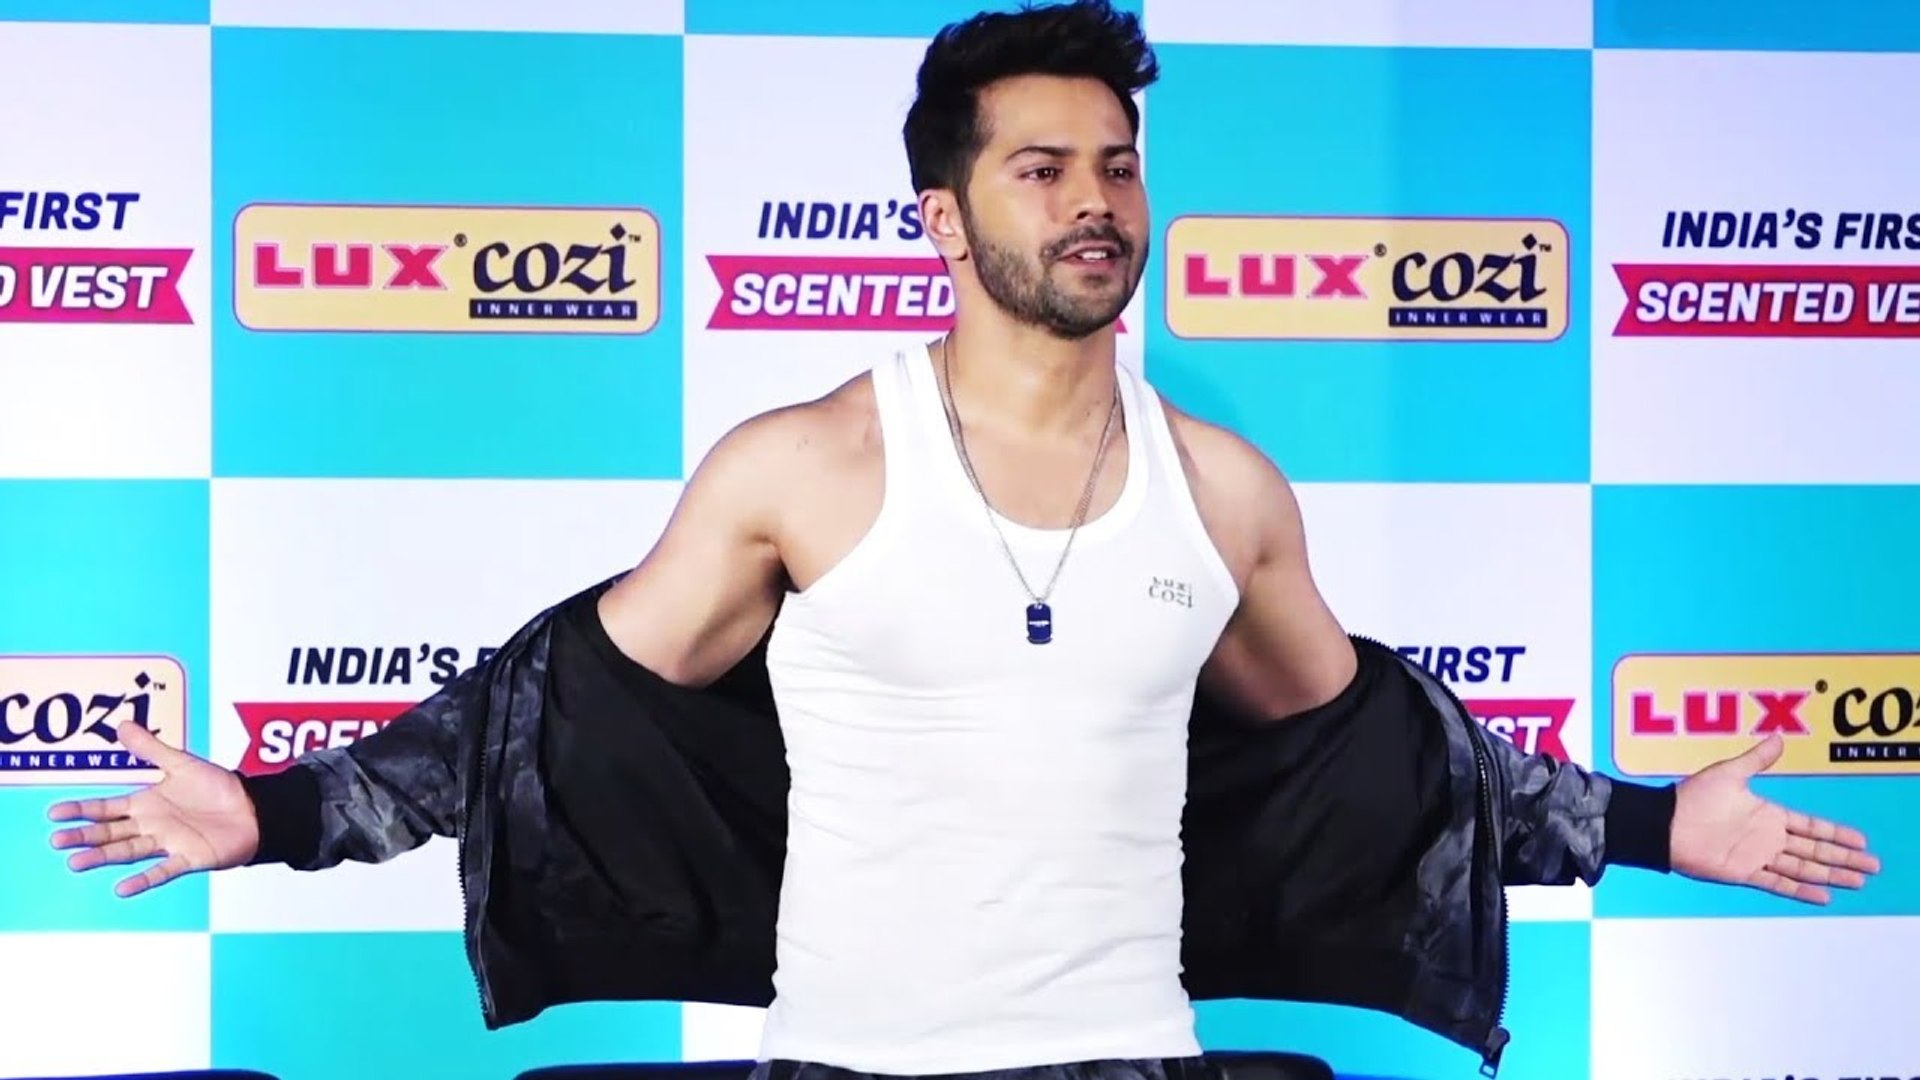 Varun Dhawan Launches India's First SCENTED Vest - Unveiling Of Lux New Innovative Product